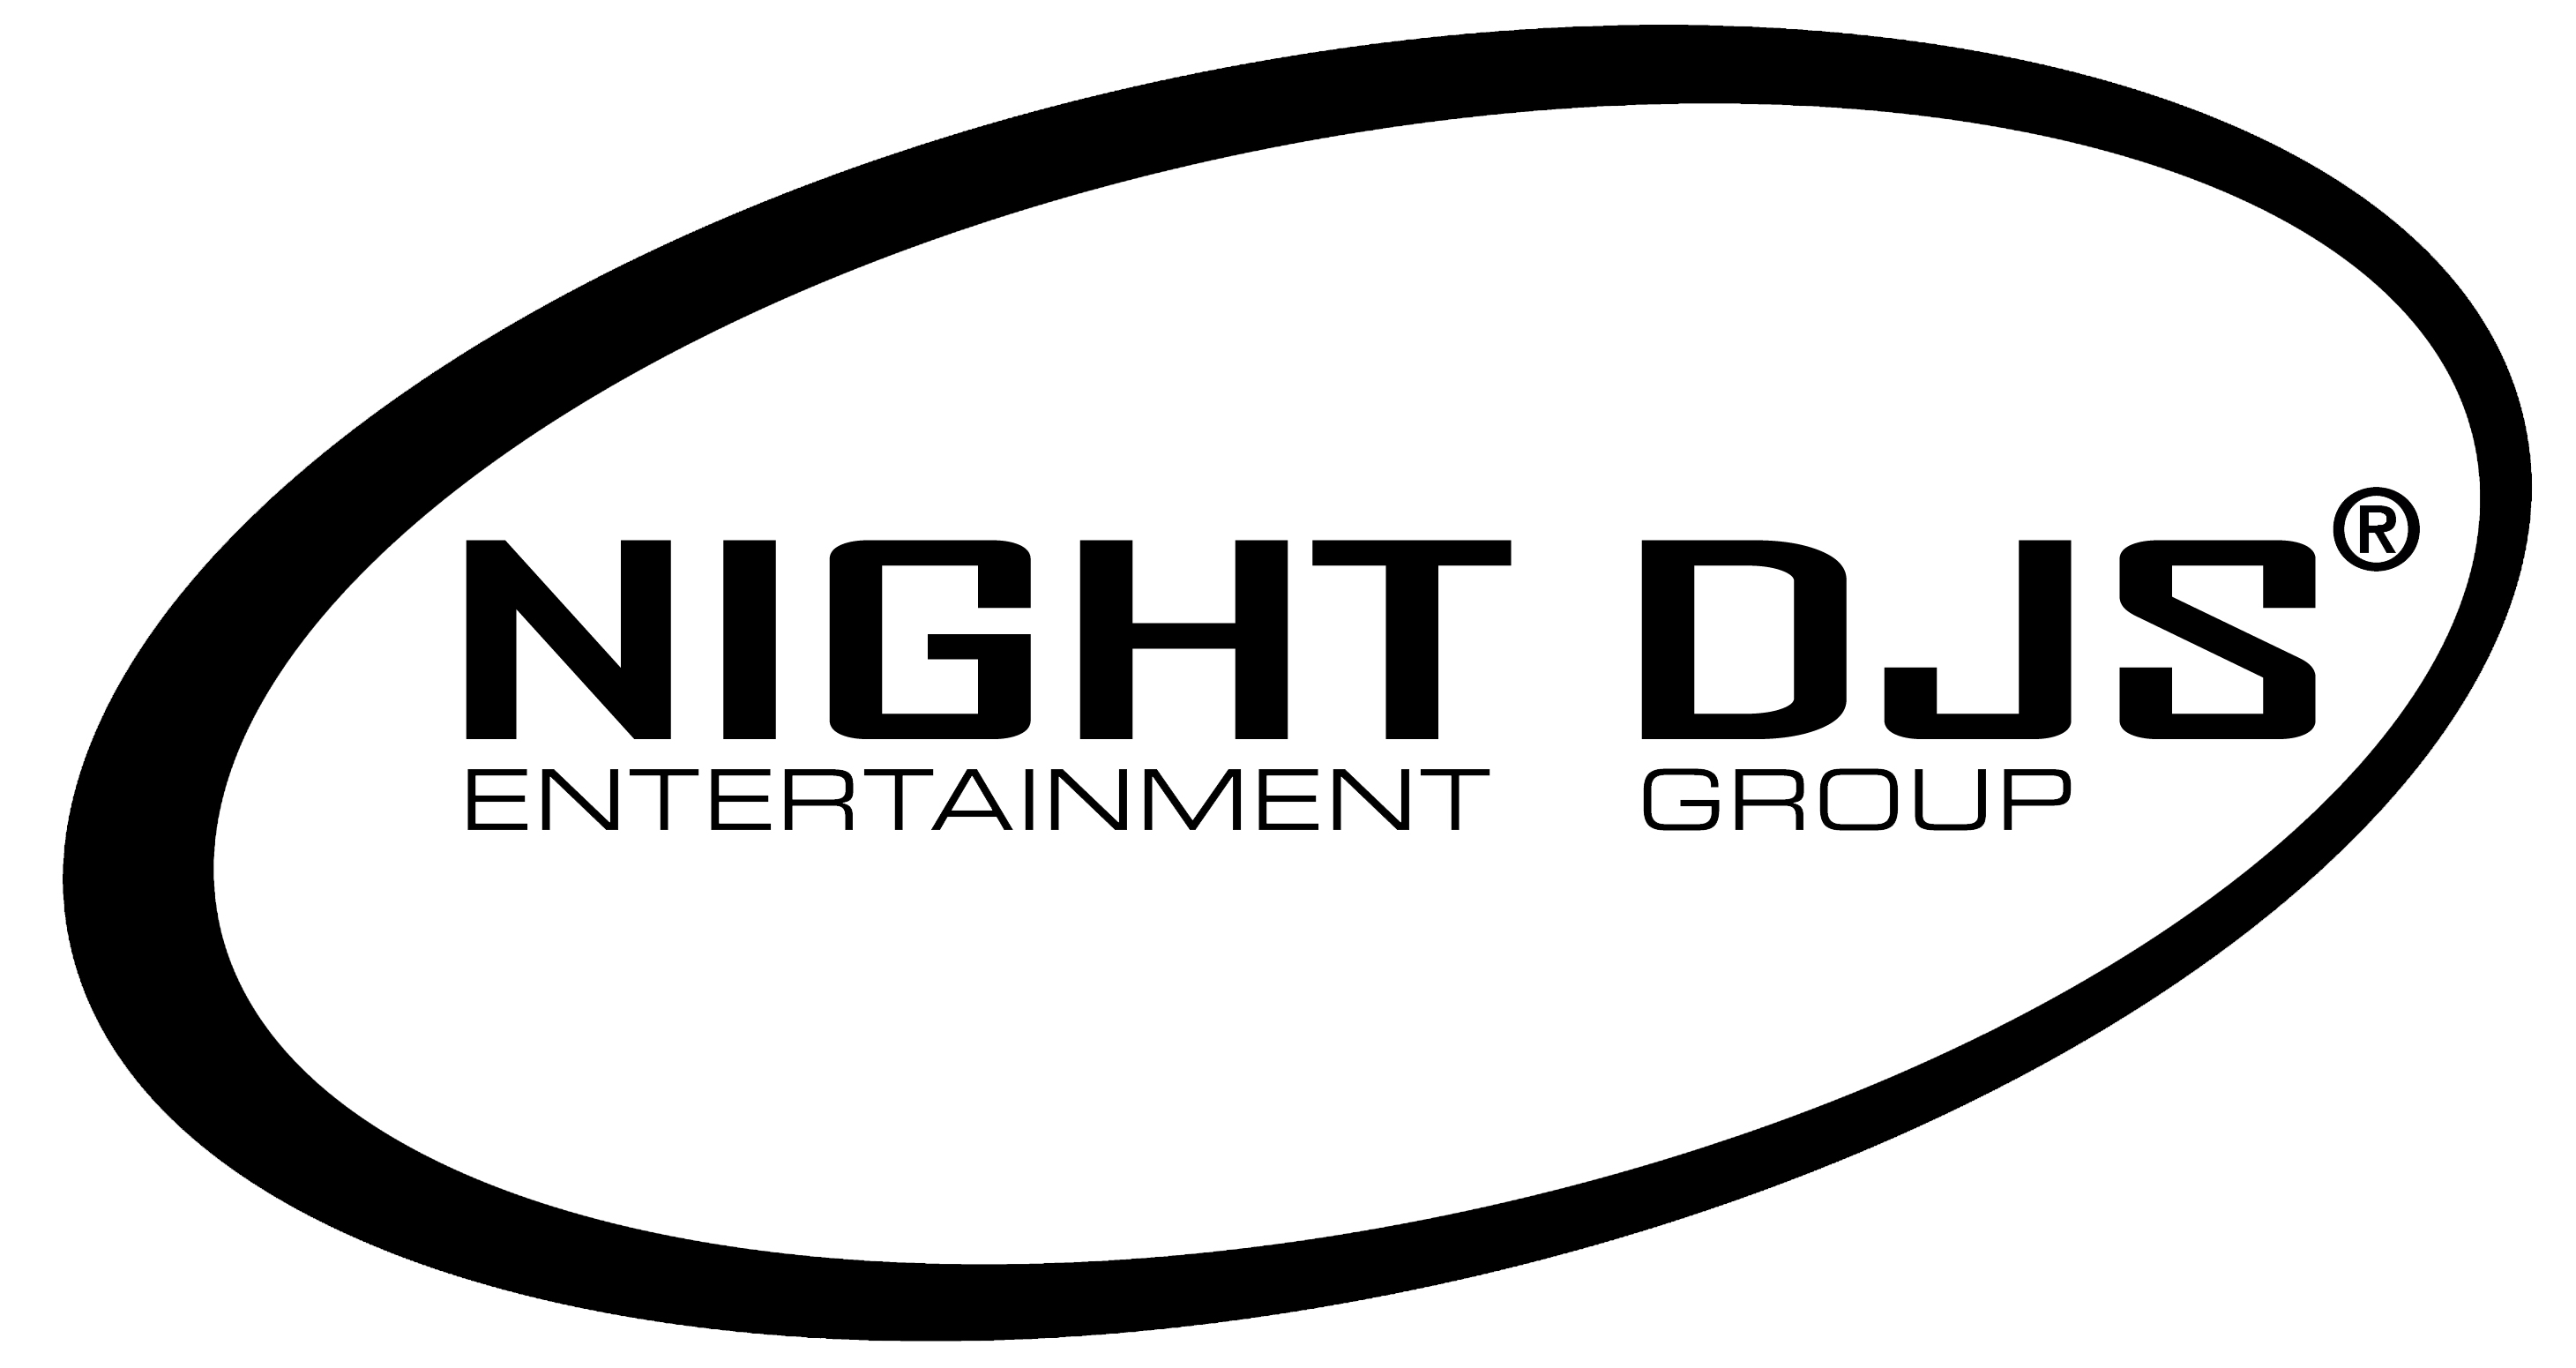 The Night DJs Entertainment Group - Freake Michael Baier - Simon C-Mon Simon Schnell - Xandl Alexander Neumann